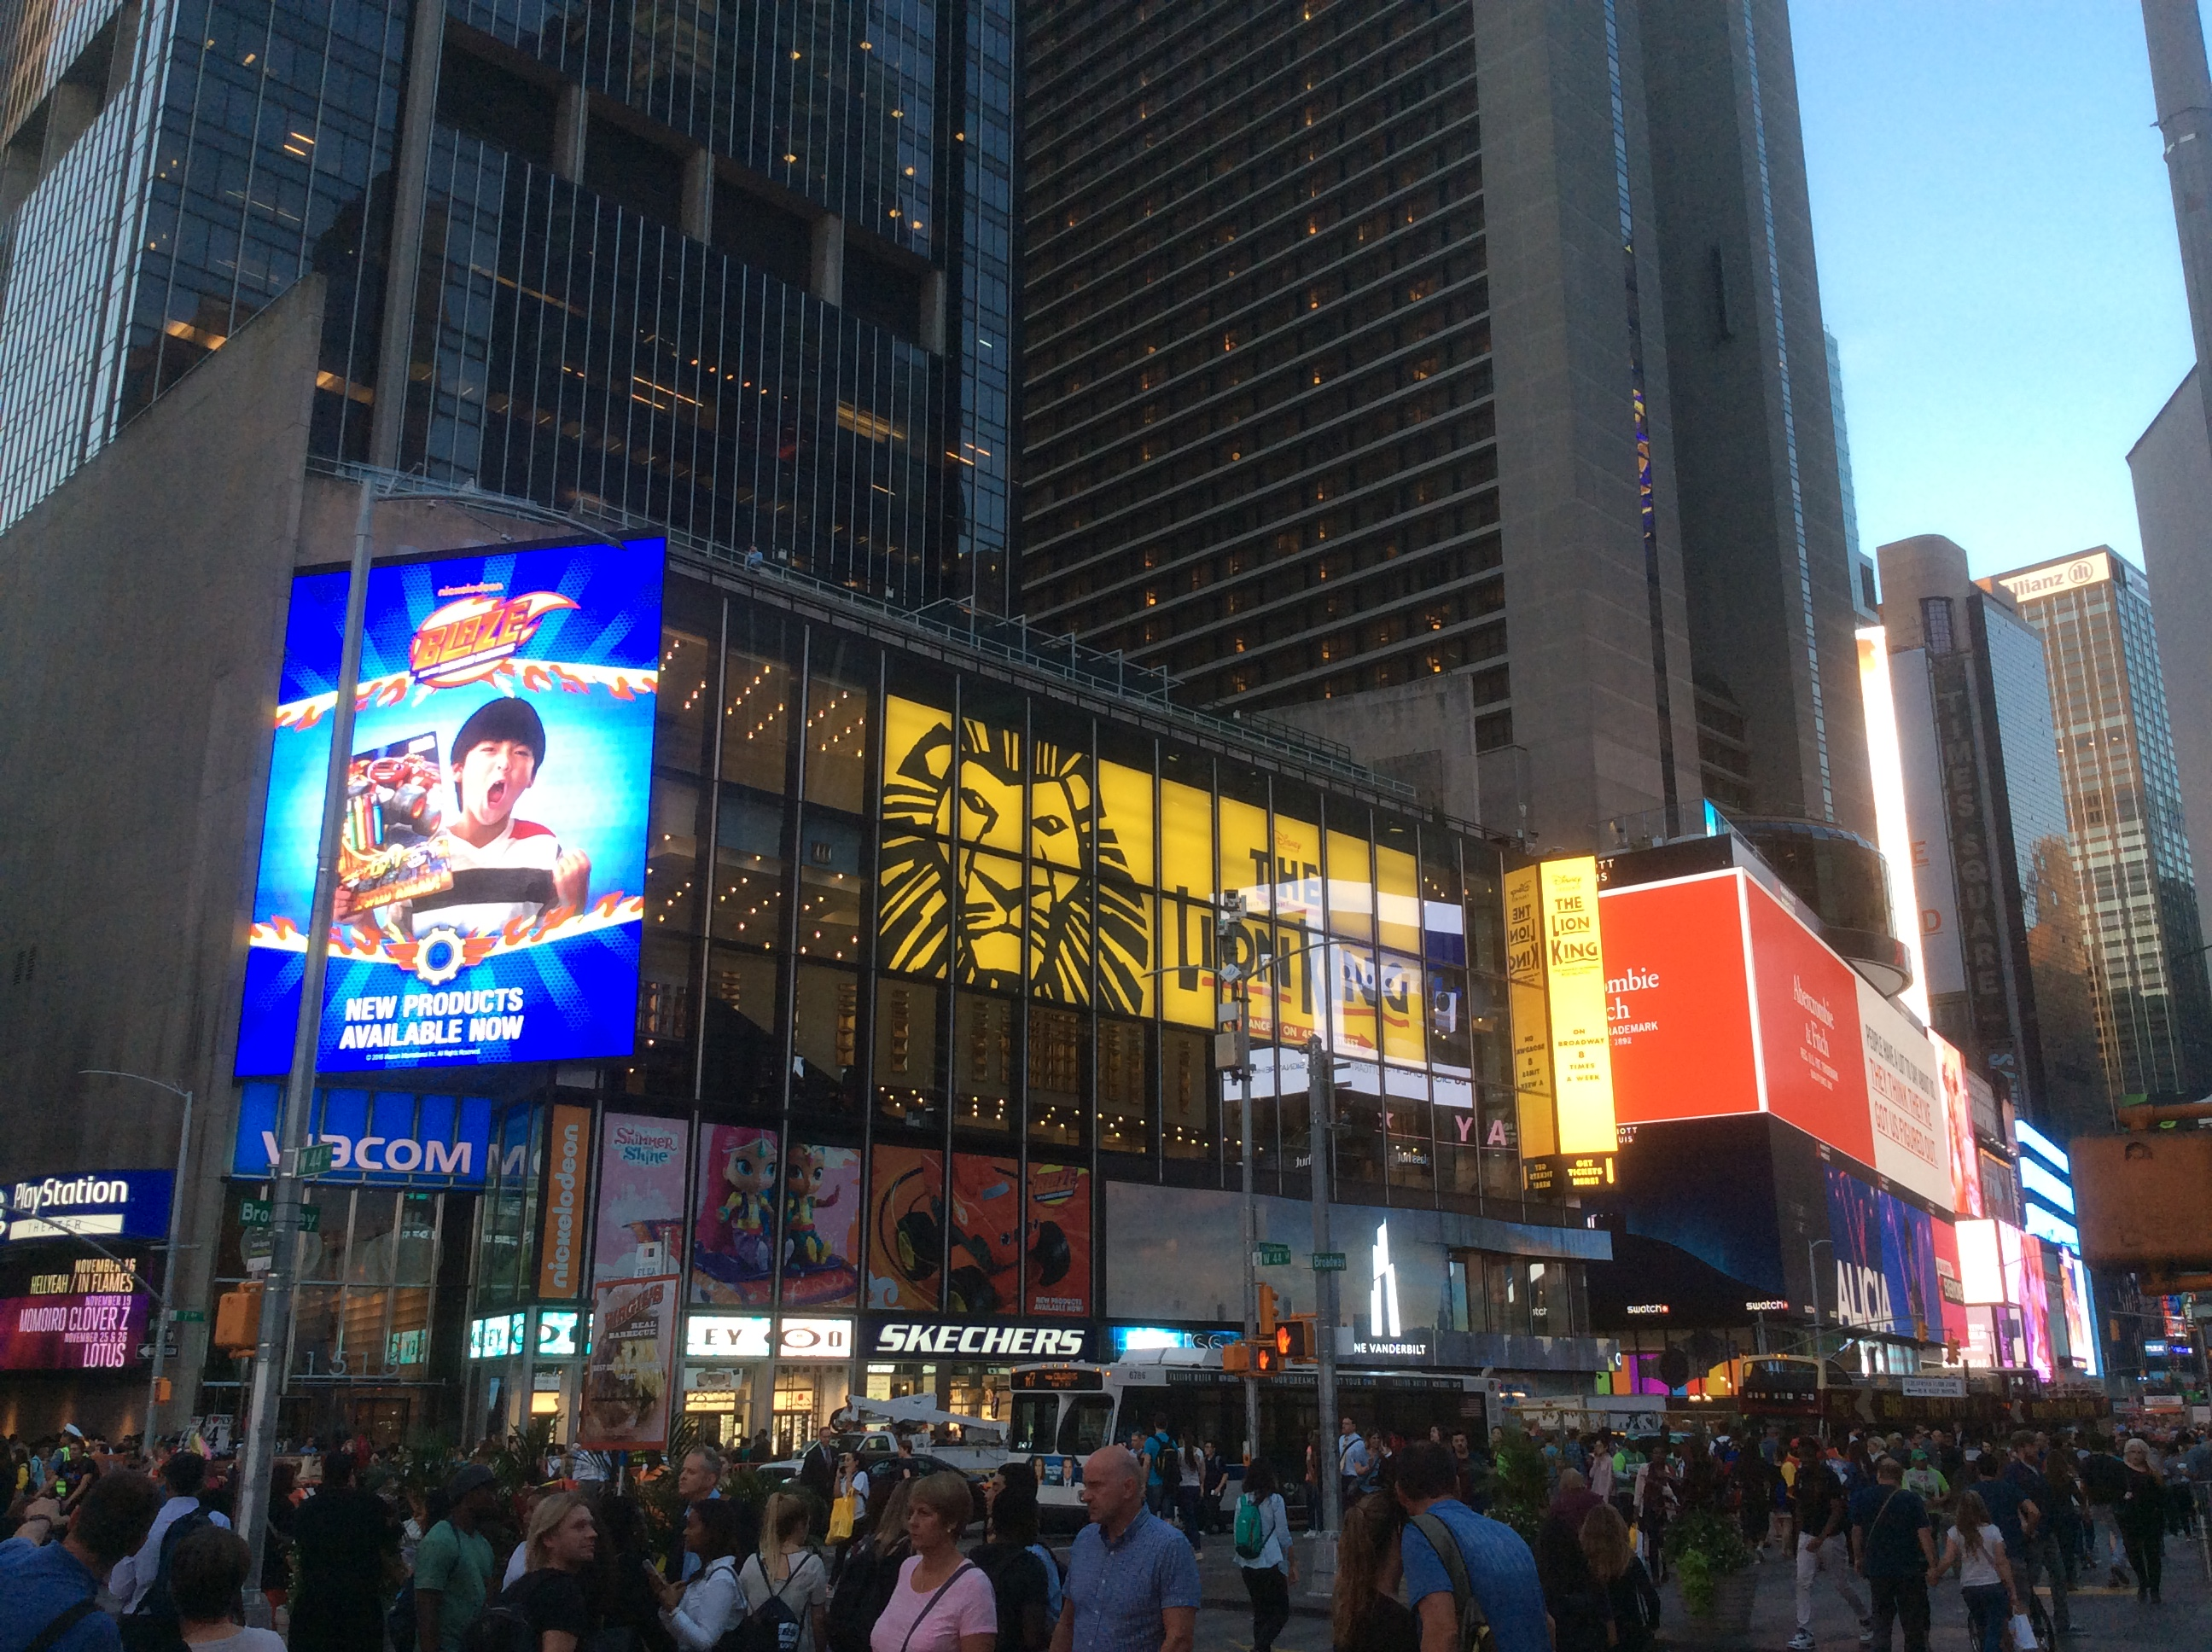 Hotel Astor behind row of lighted billboards on Times Square, NYC, photo 2016 by Amy Cools